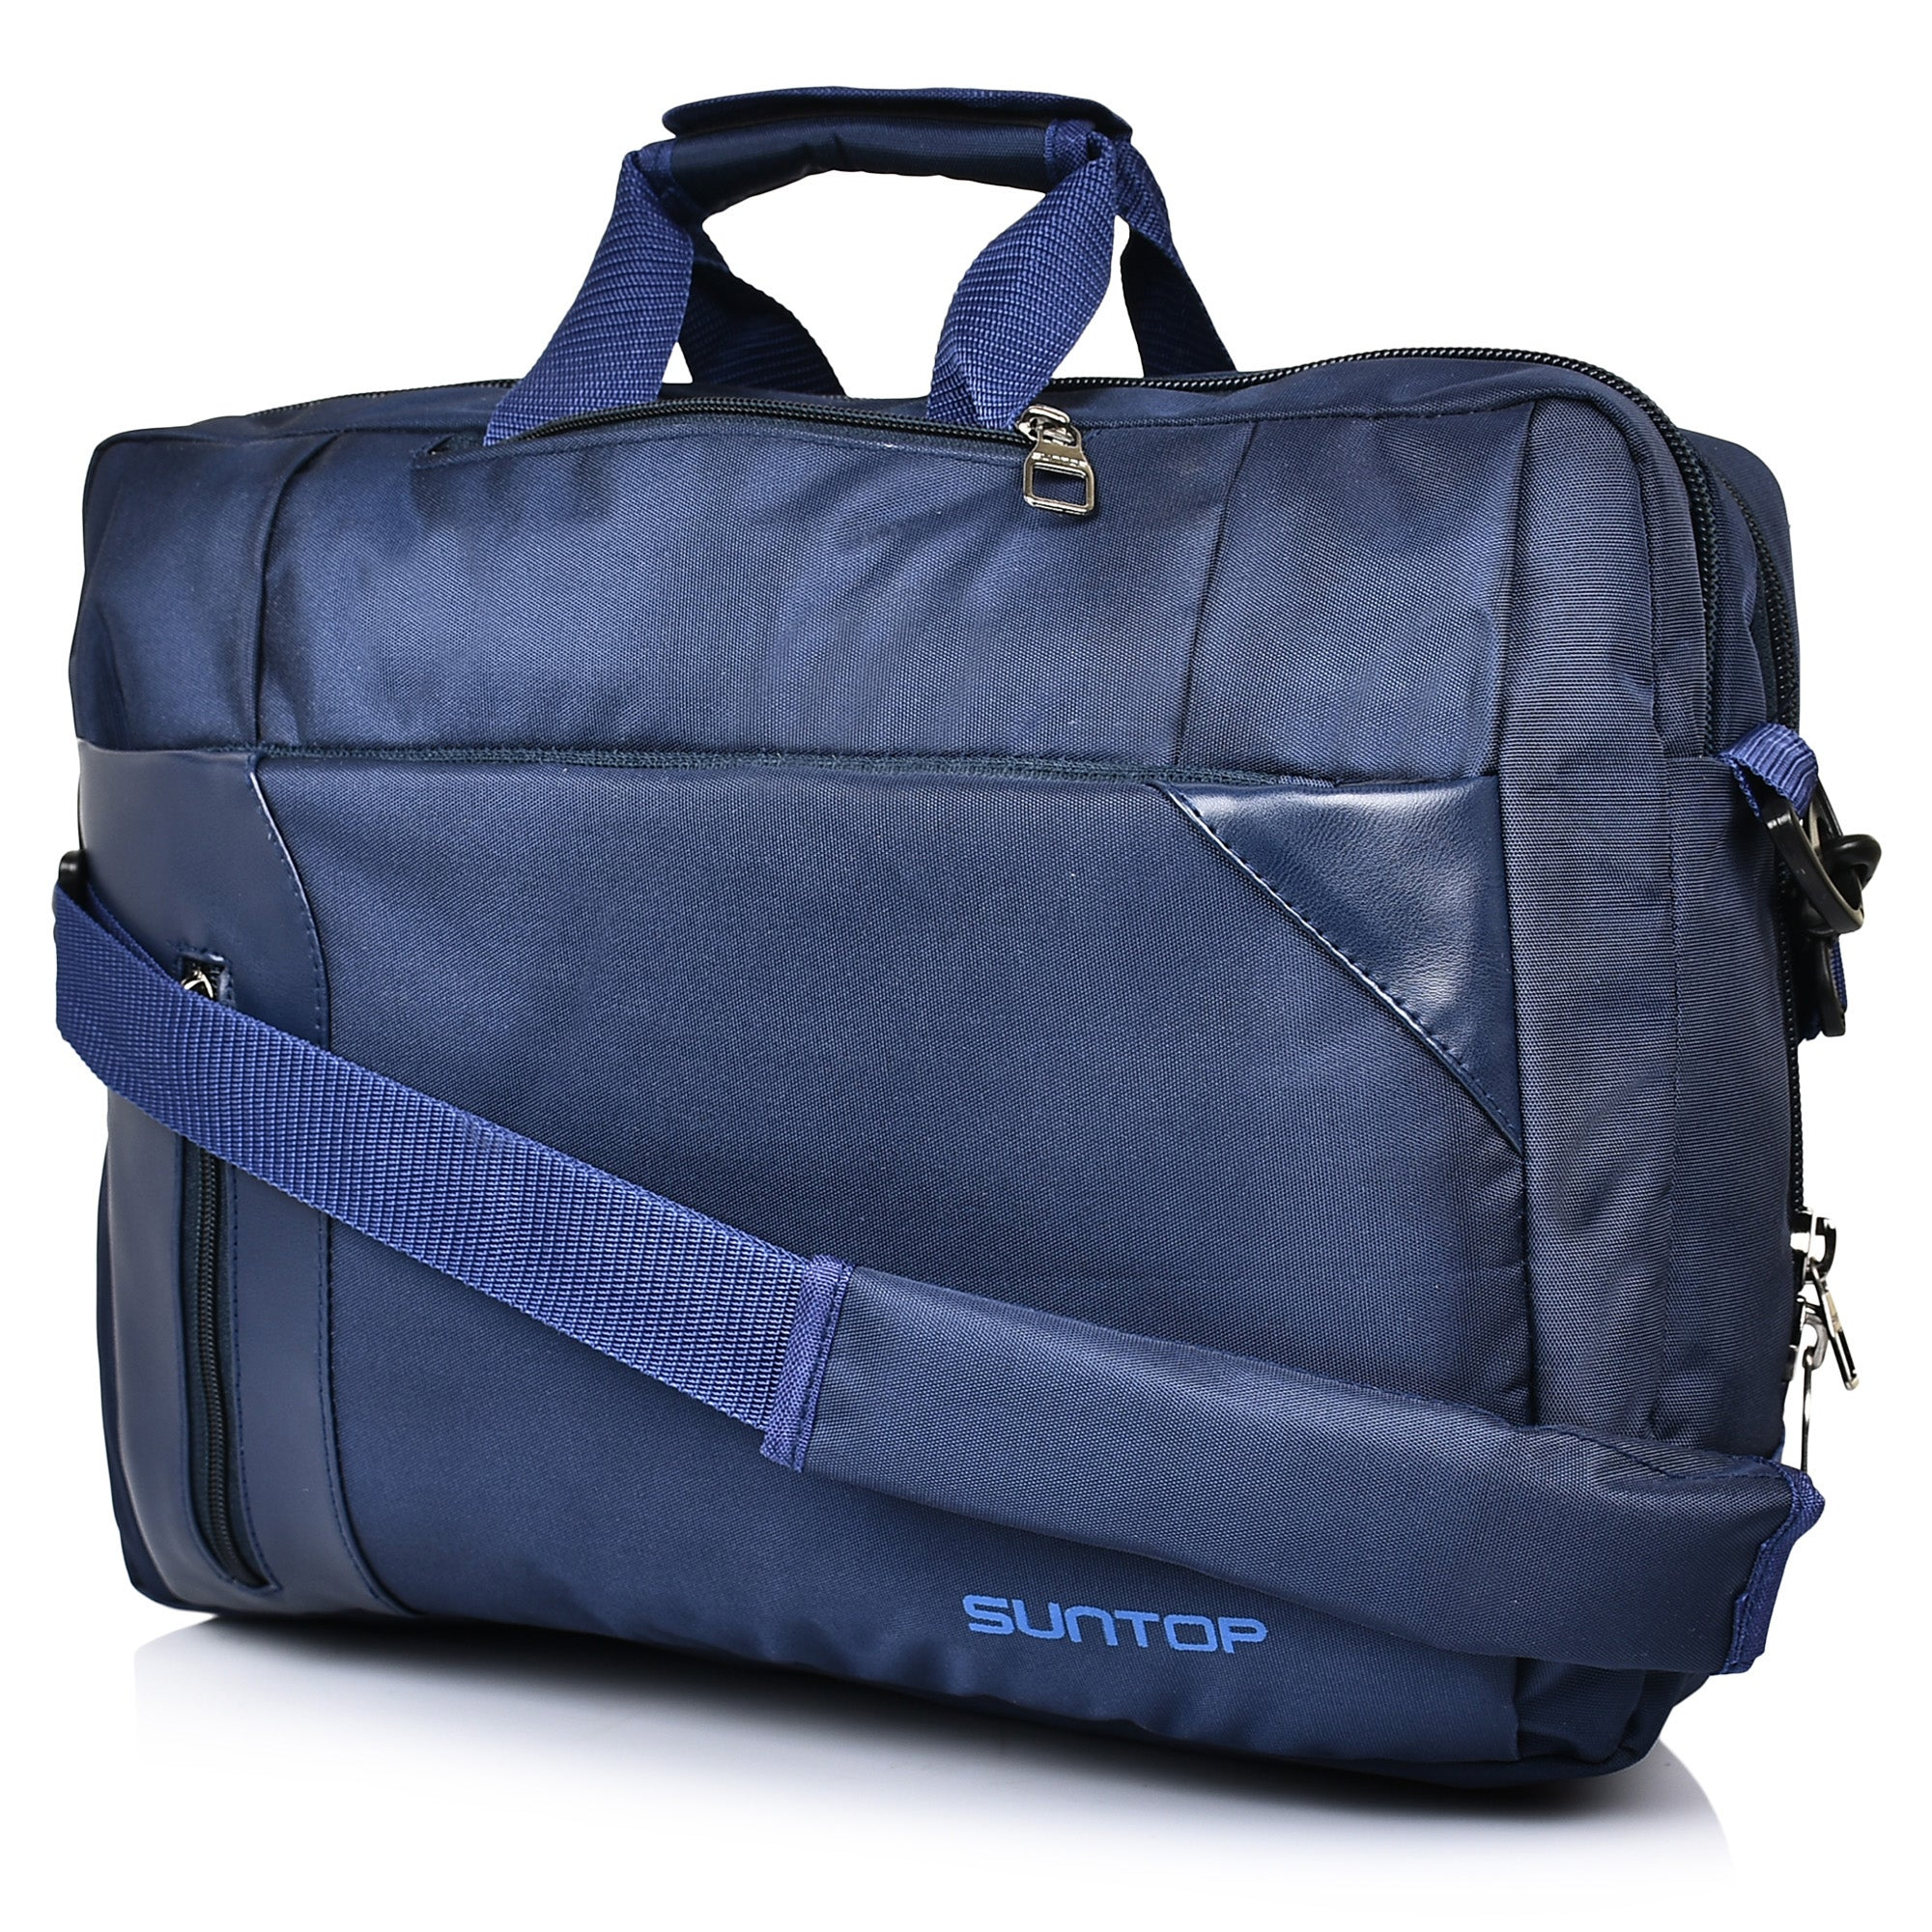 "Suntop Dexter Blue Colour (15"" Laptop) 3 Way Shoulder Backpack Bag (16 L)"